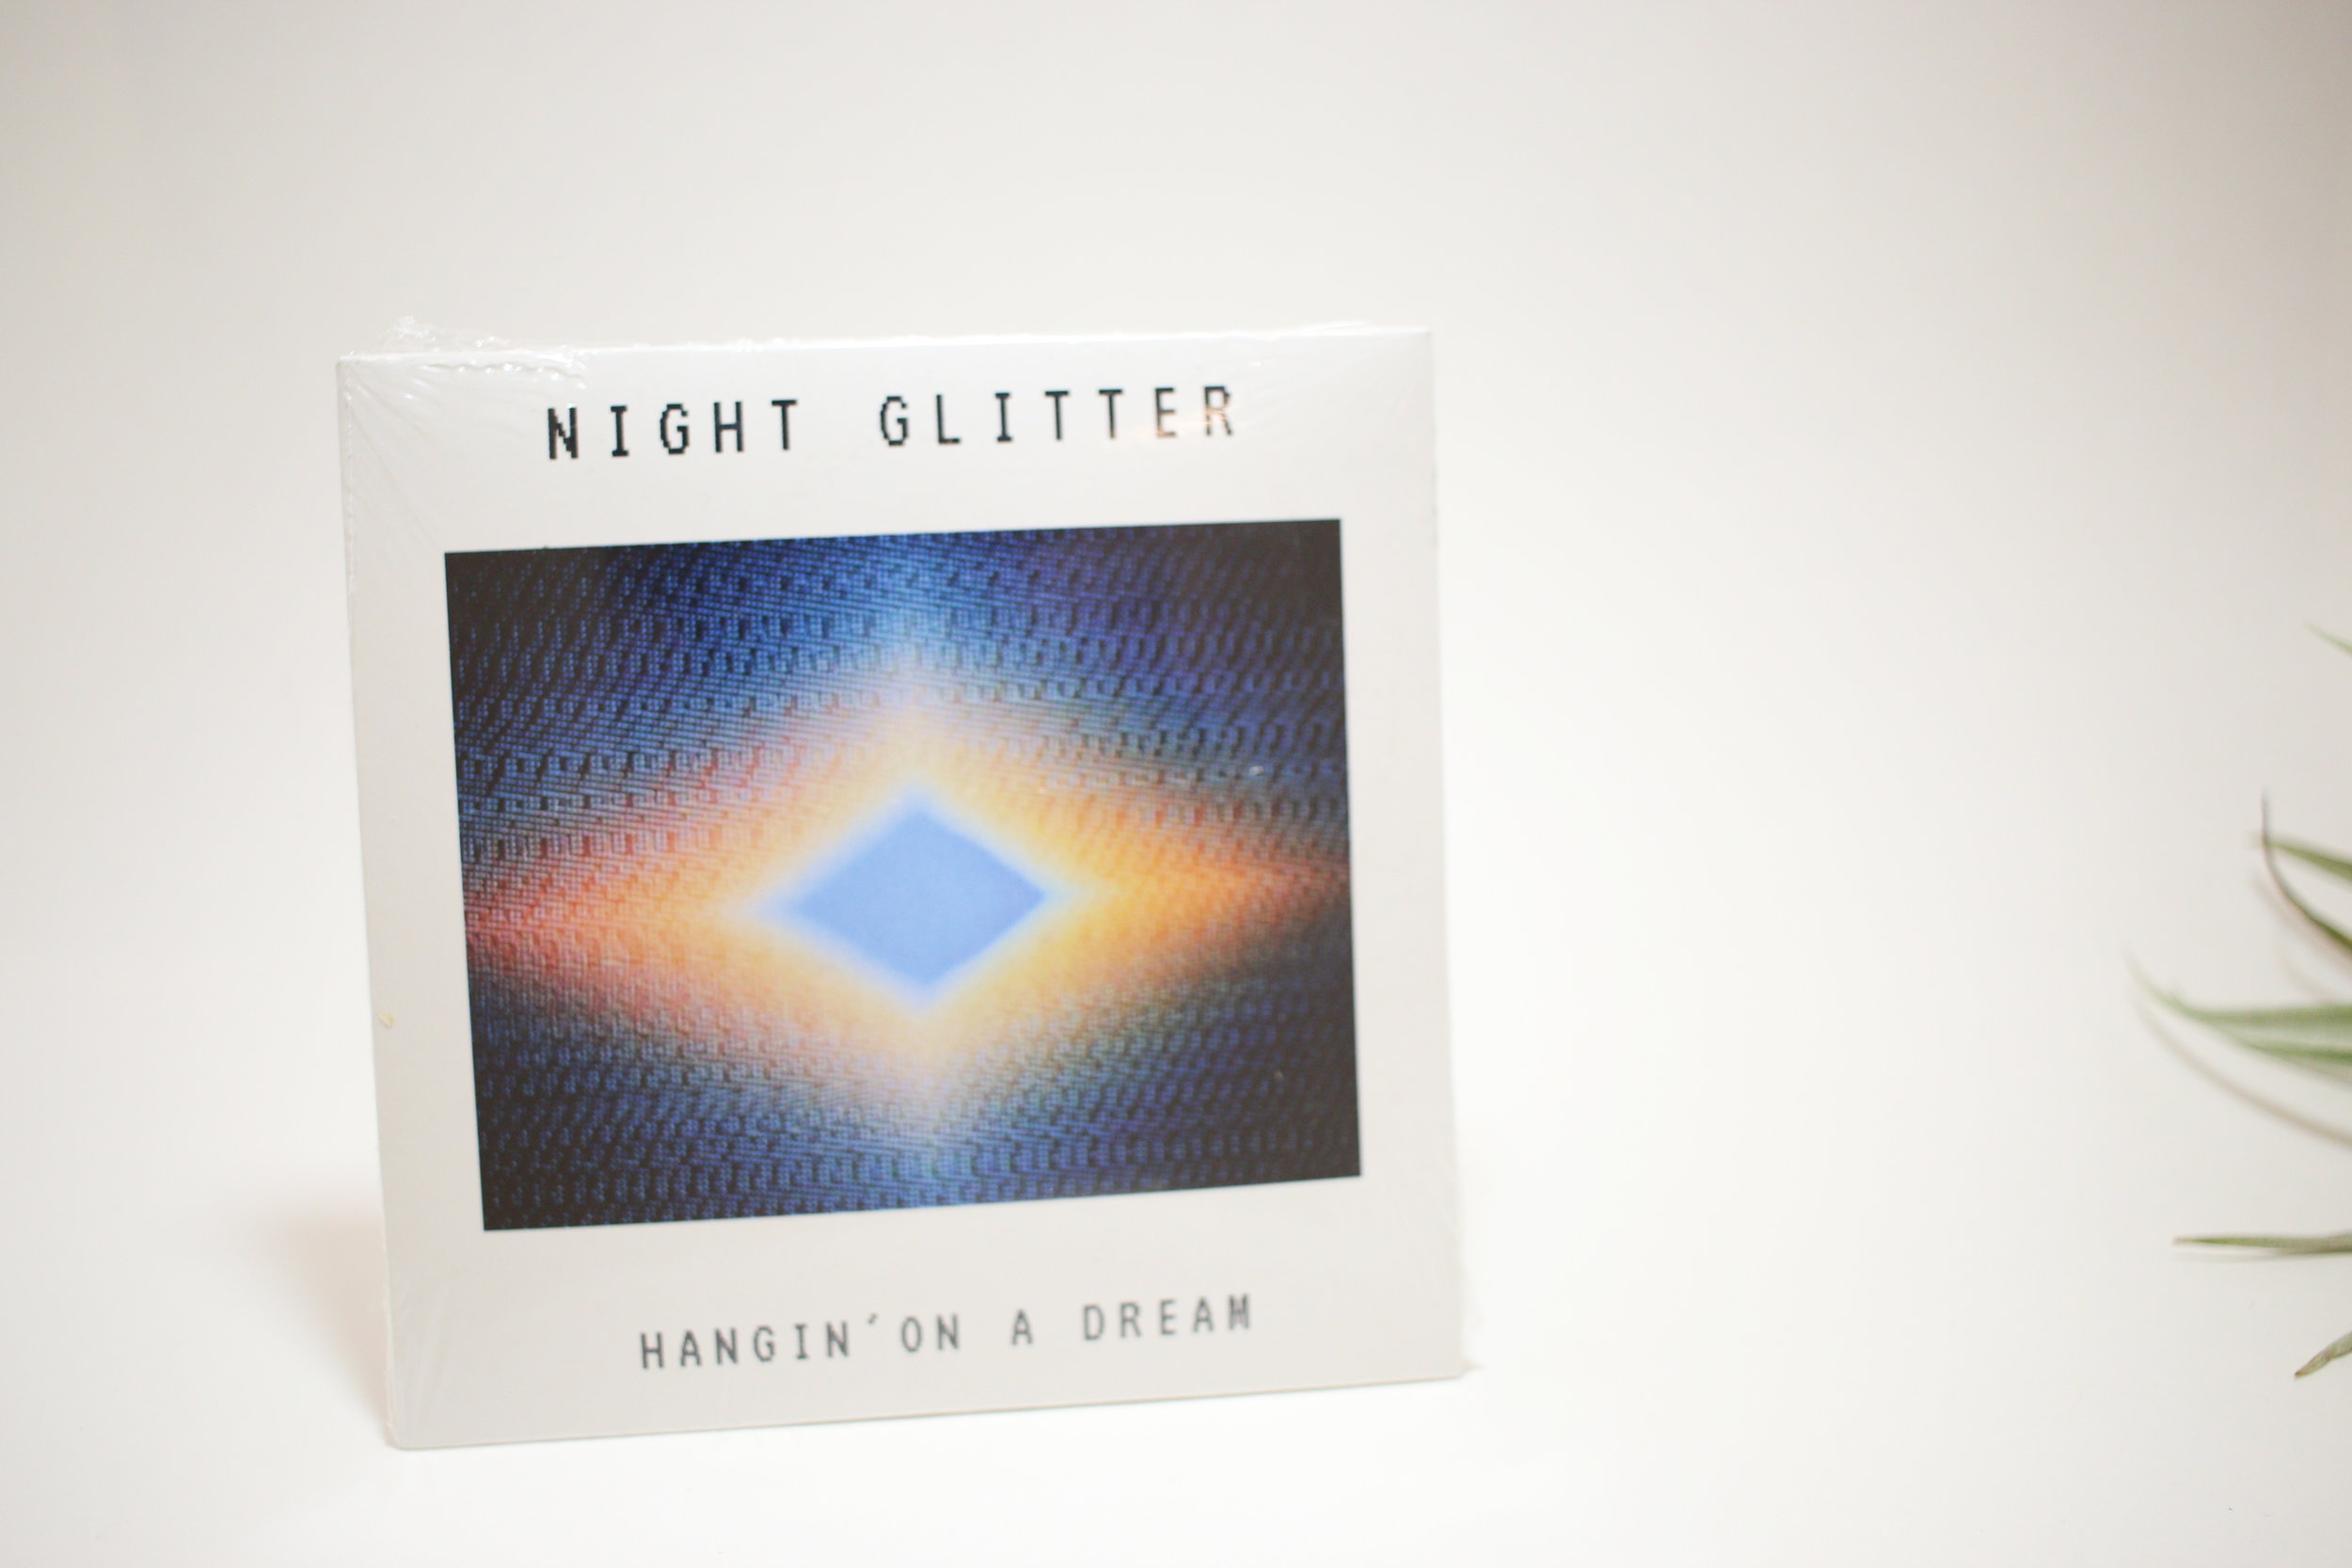 Hangin' On By A Dream EP by Night Glitter